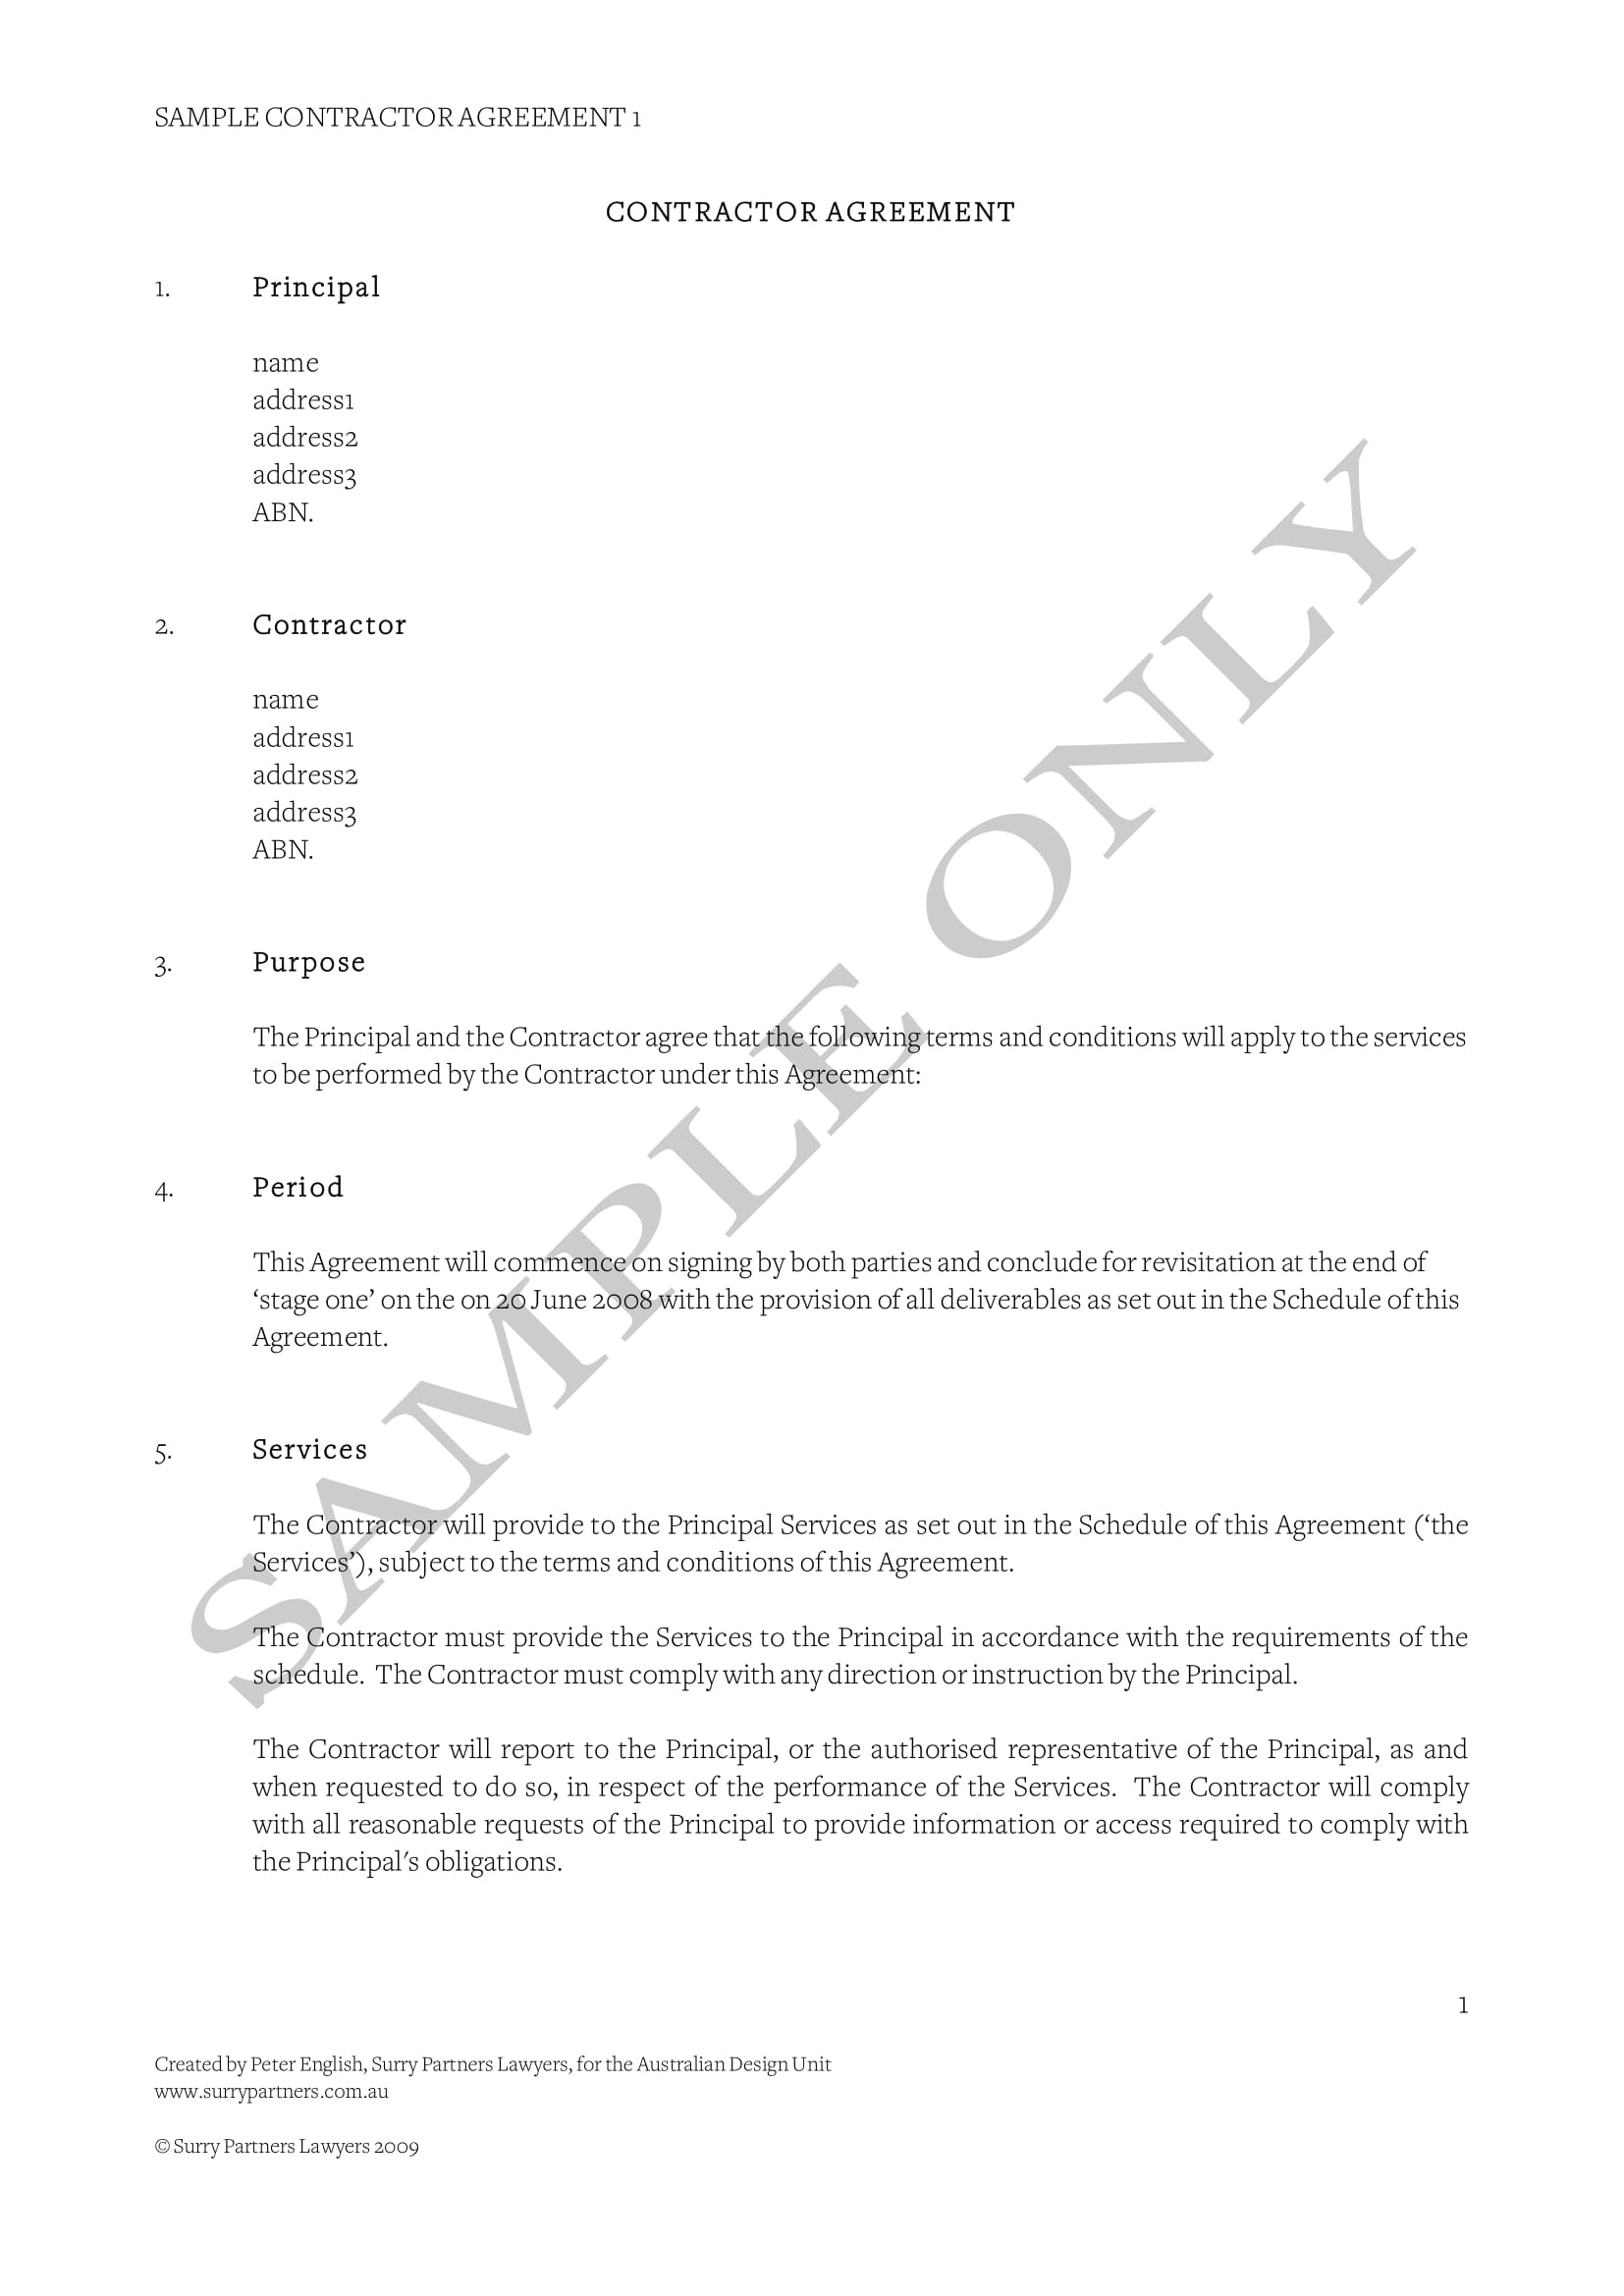 contractor agreement example